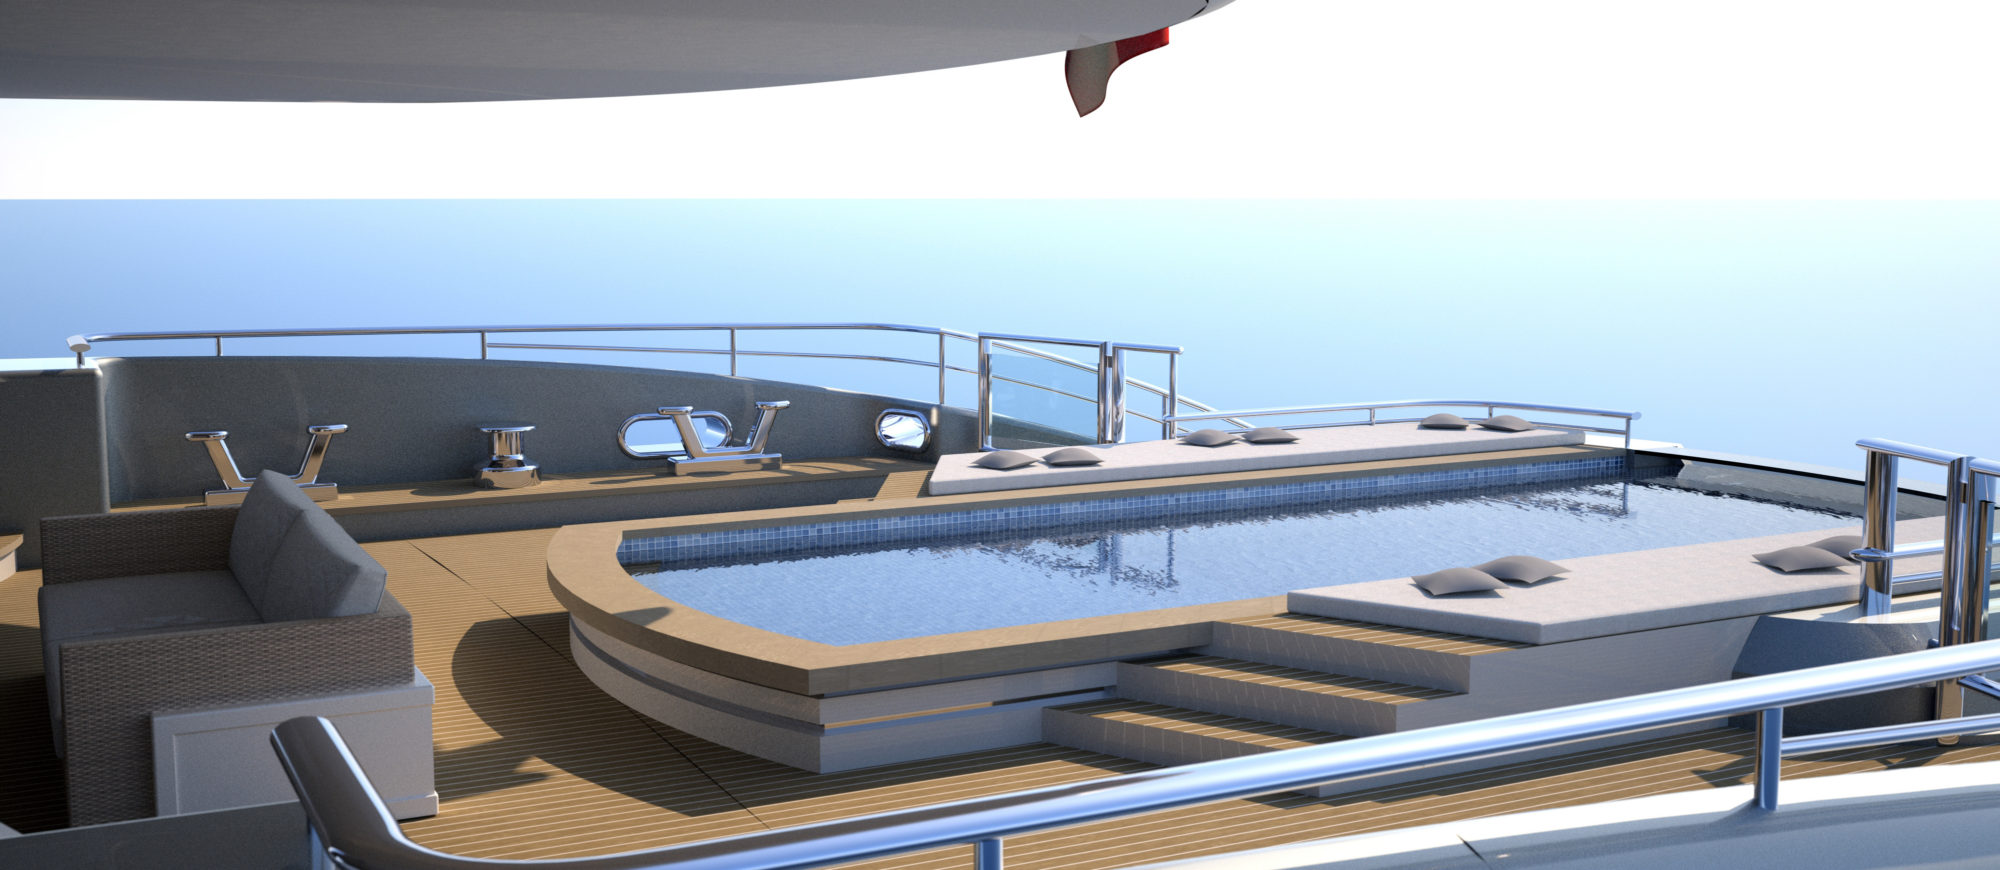 Conrad C233 Superyacht Concept Vallicelli Visualisation Main Deck 2